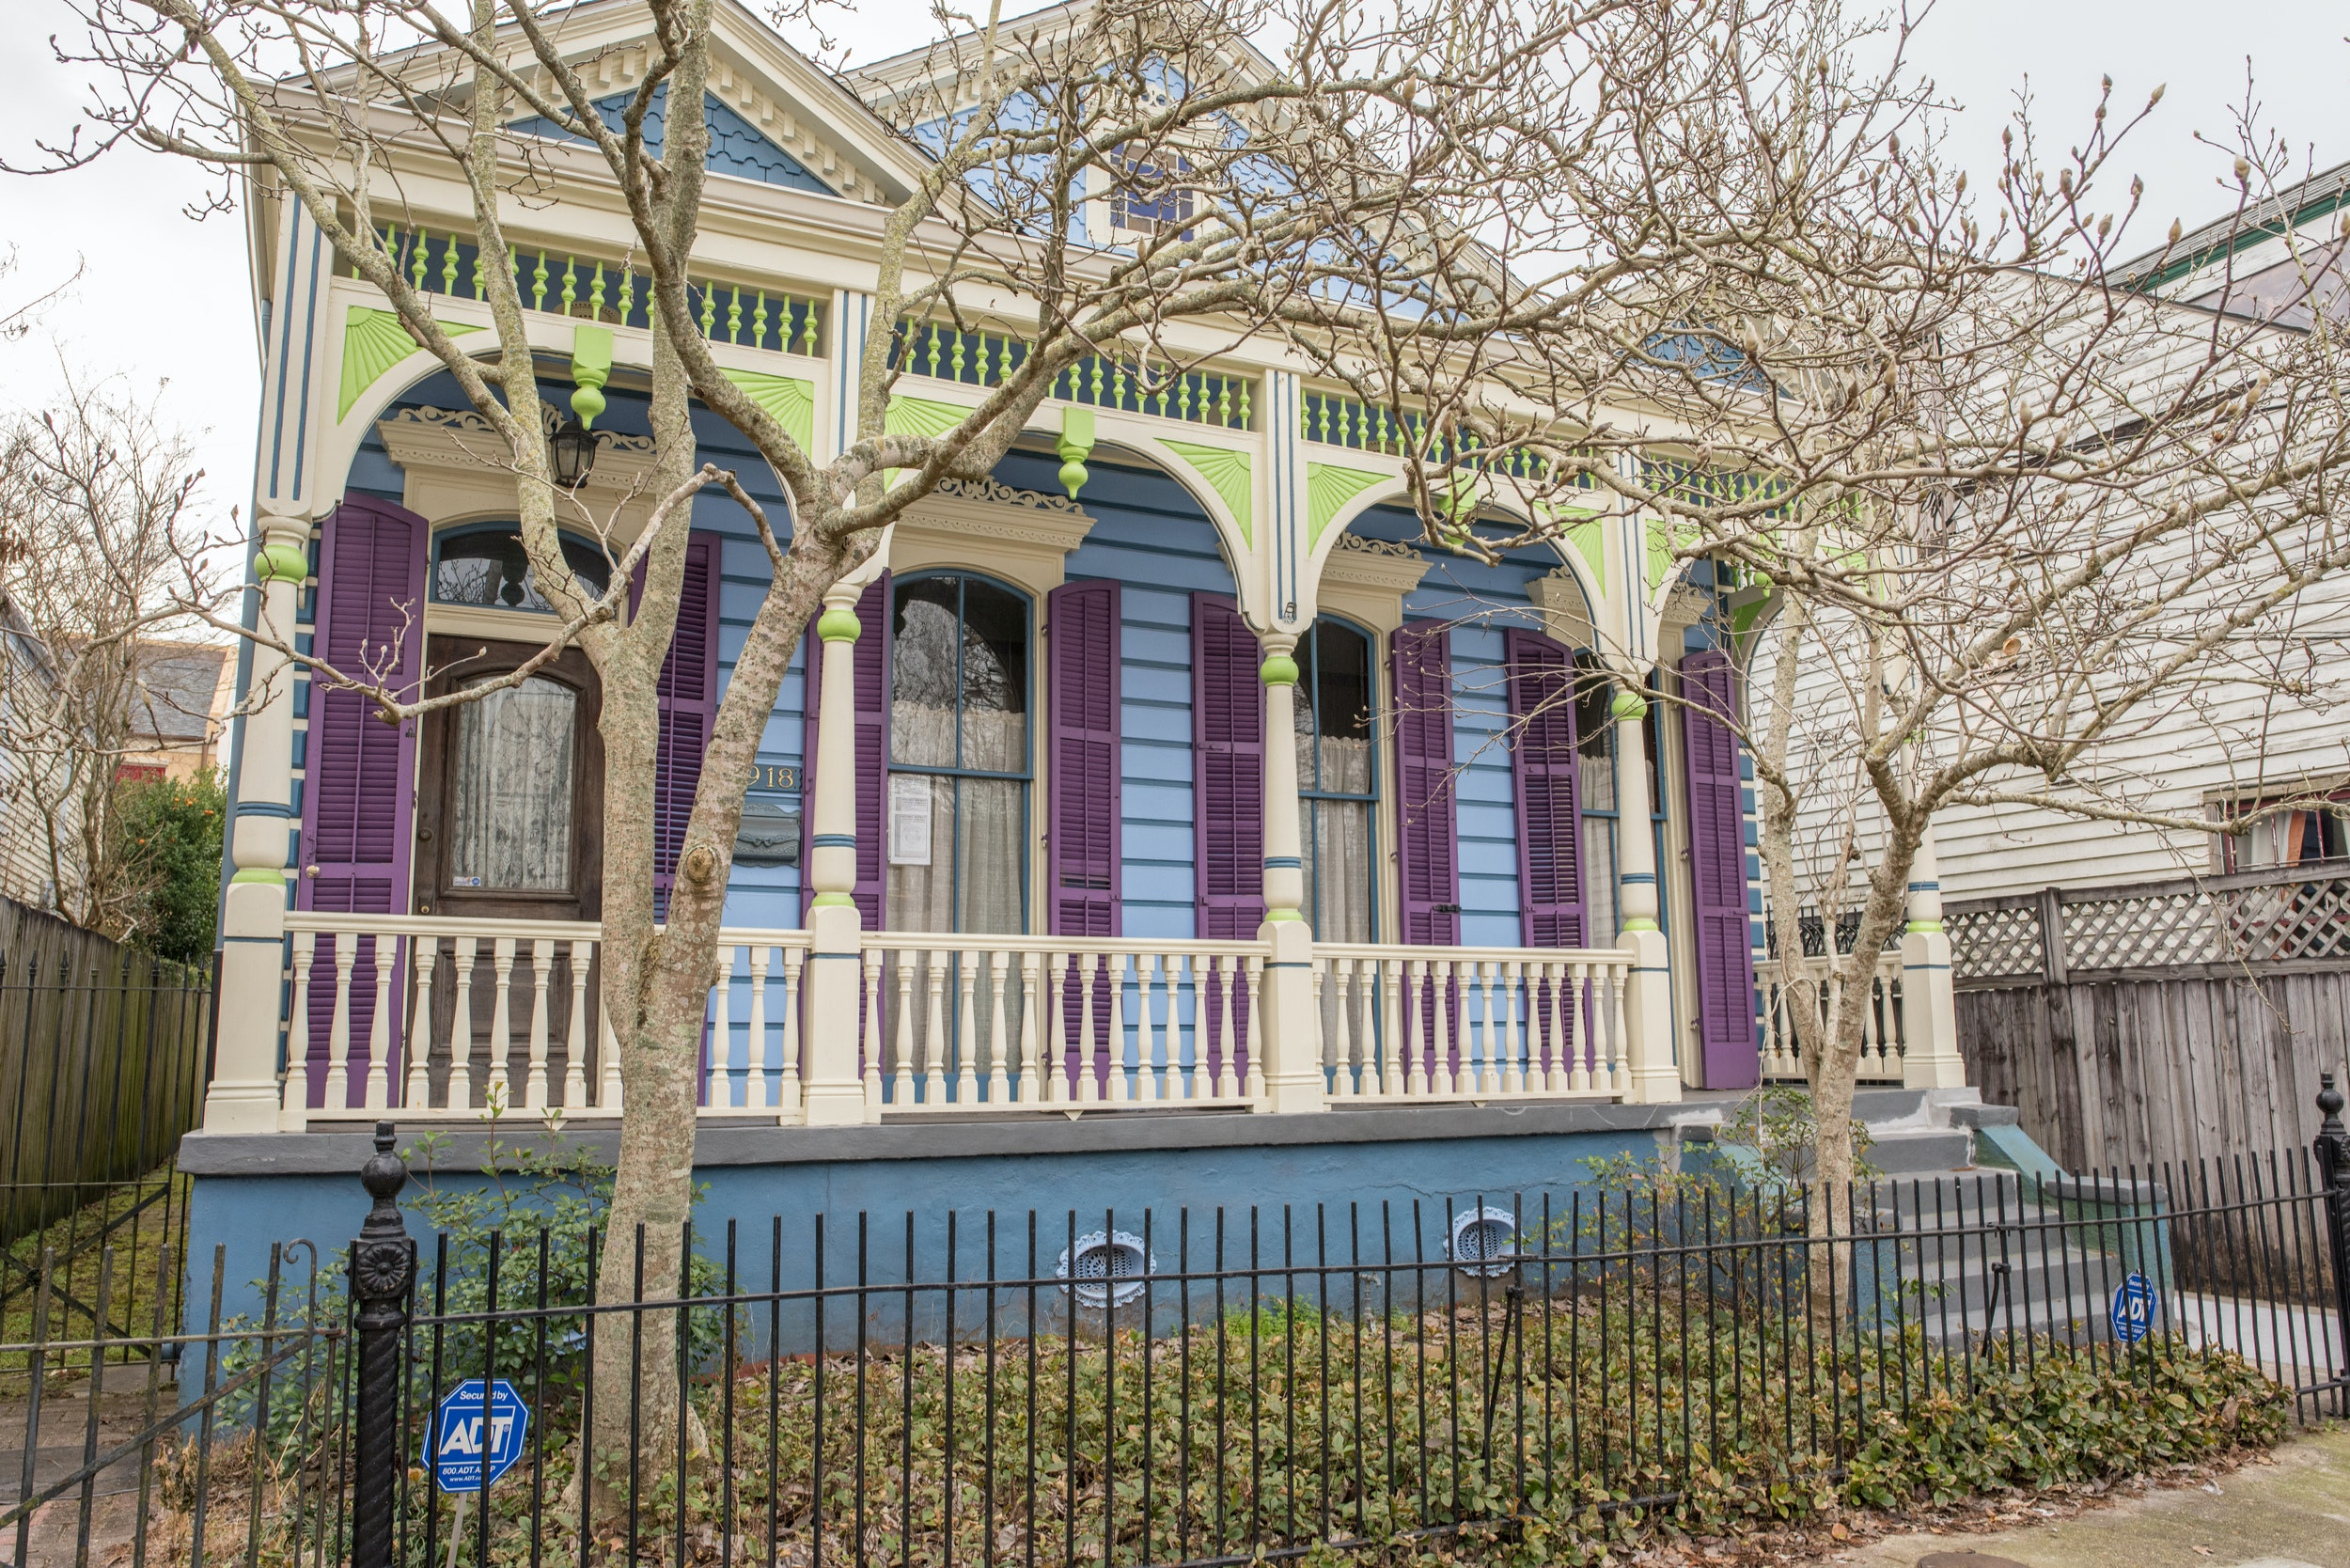 The Marigny and Bywater districts are full of colorful homes.